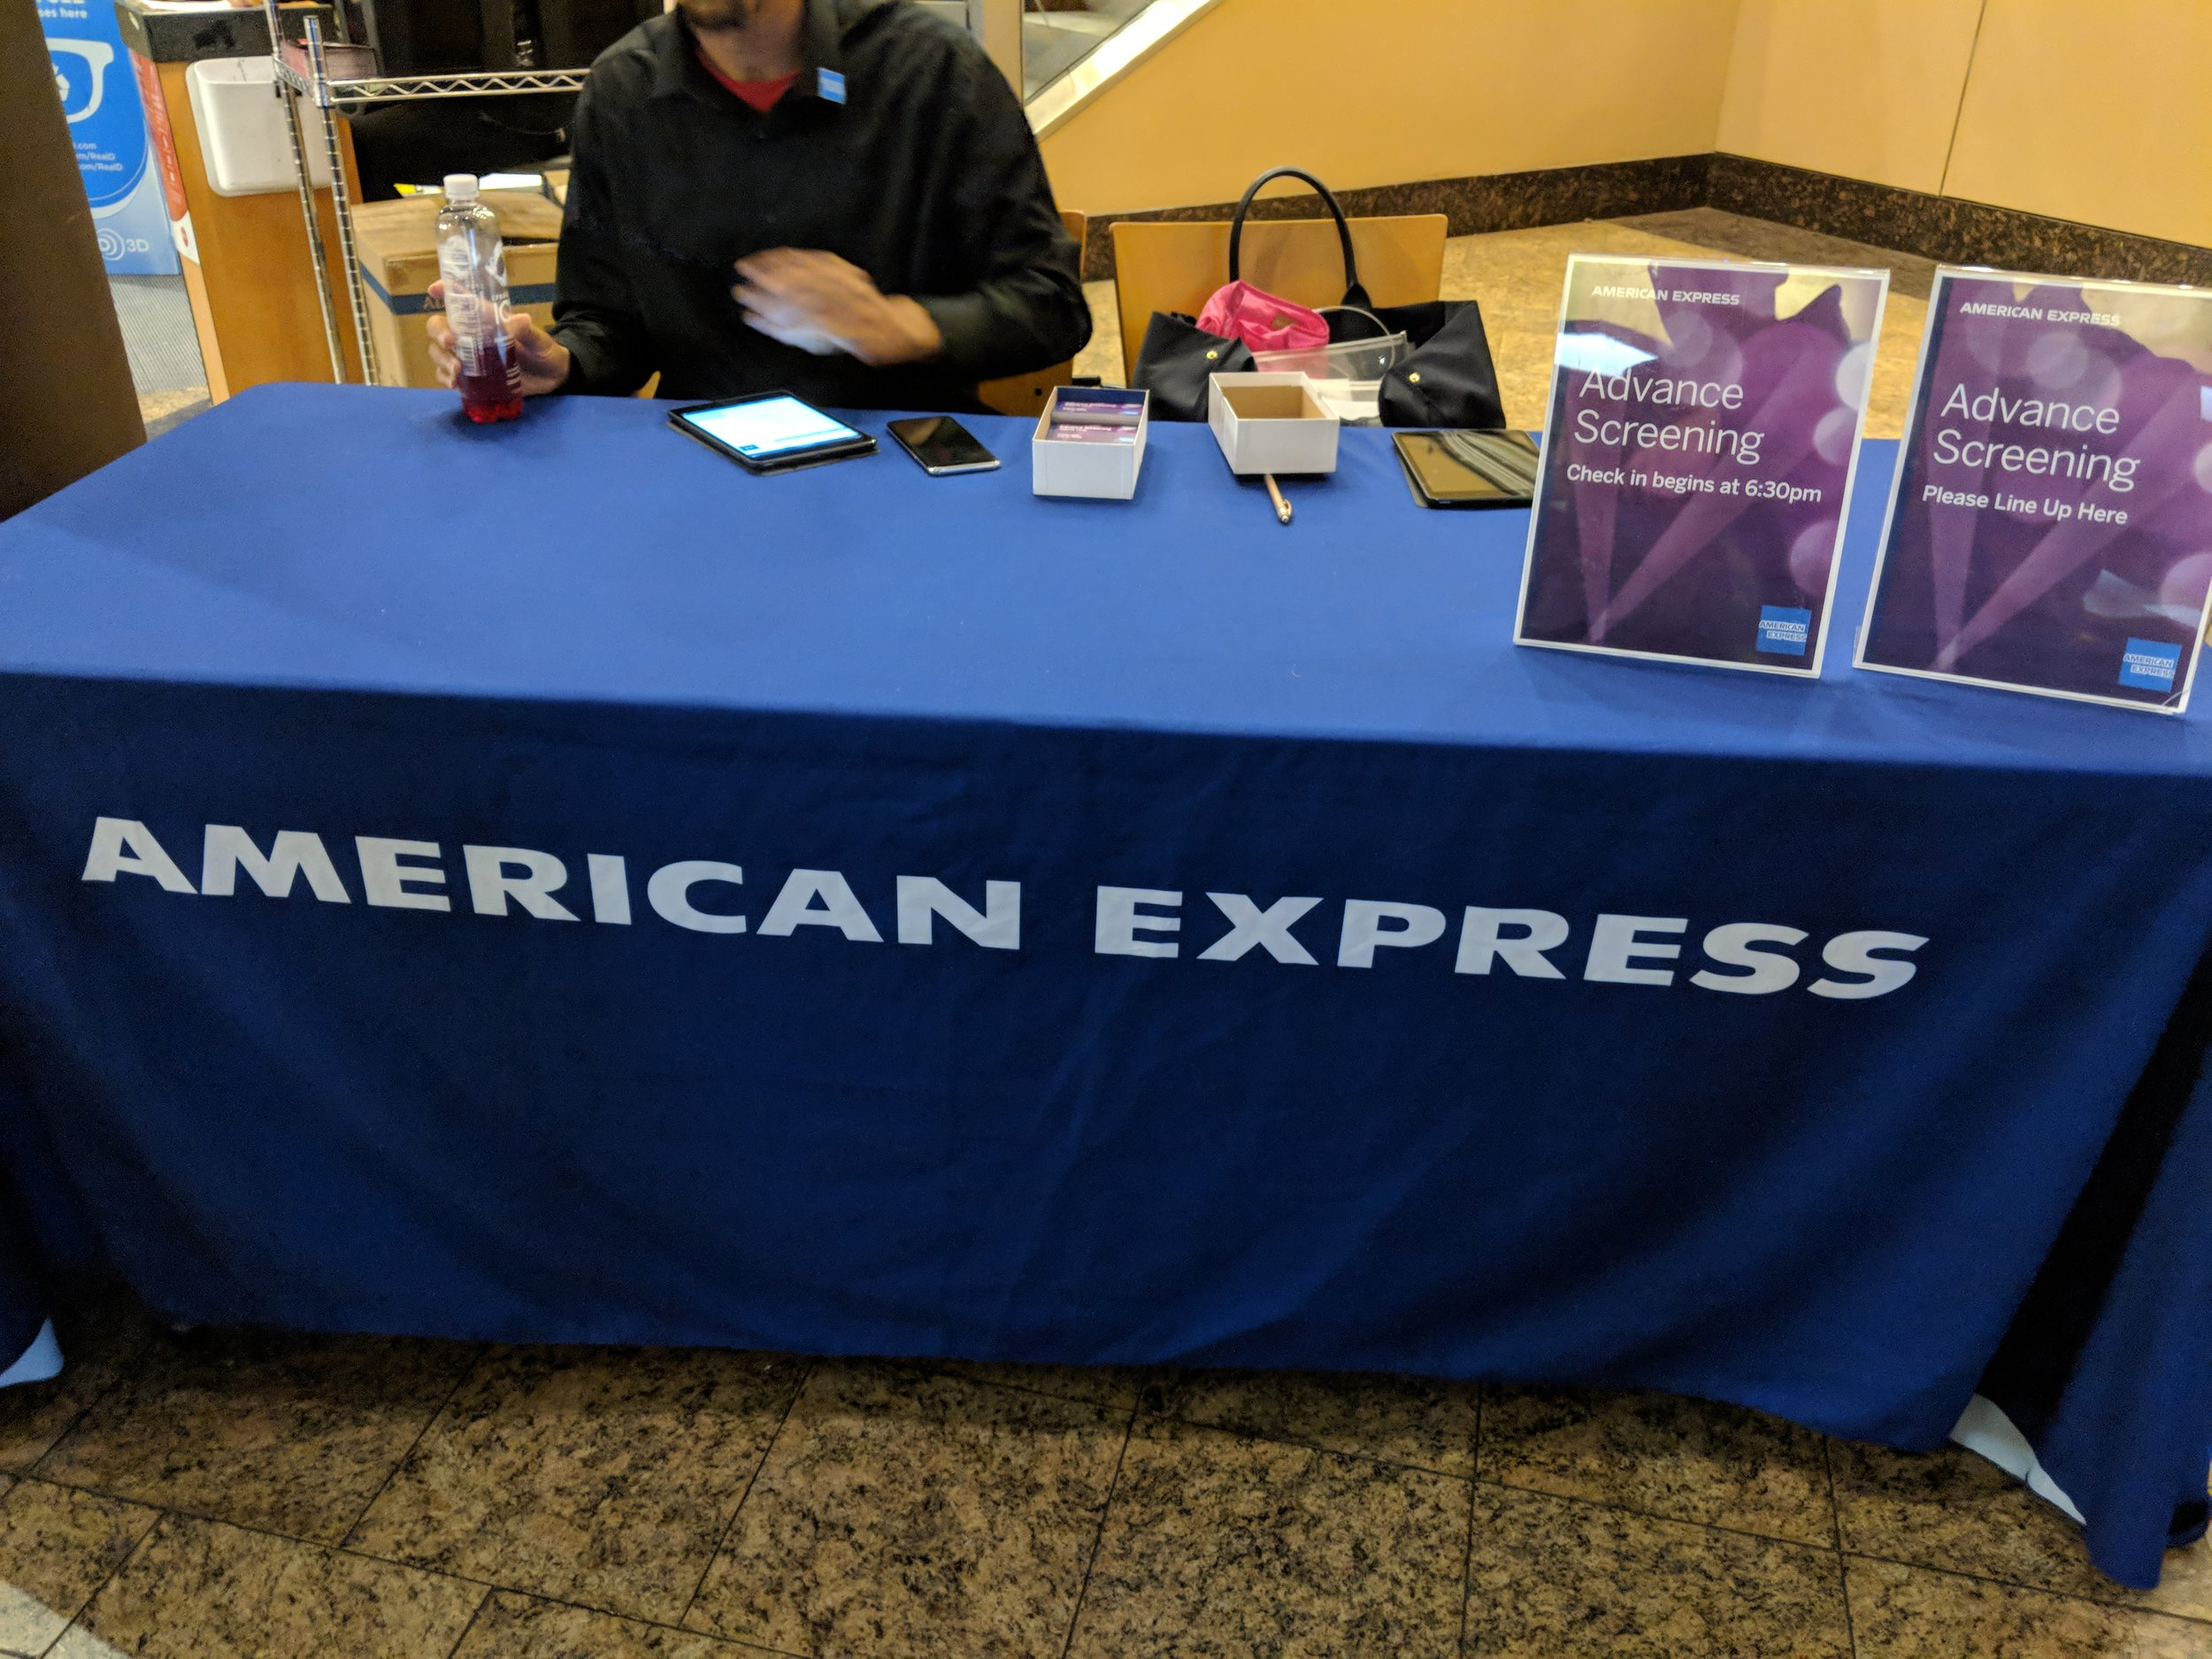 amex booth to pick up tickets